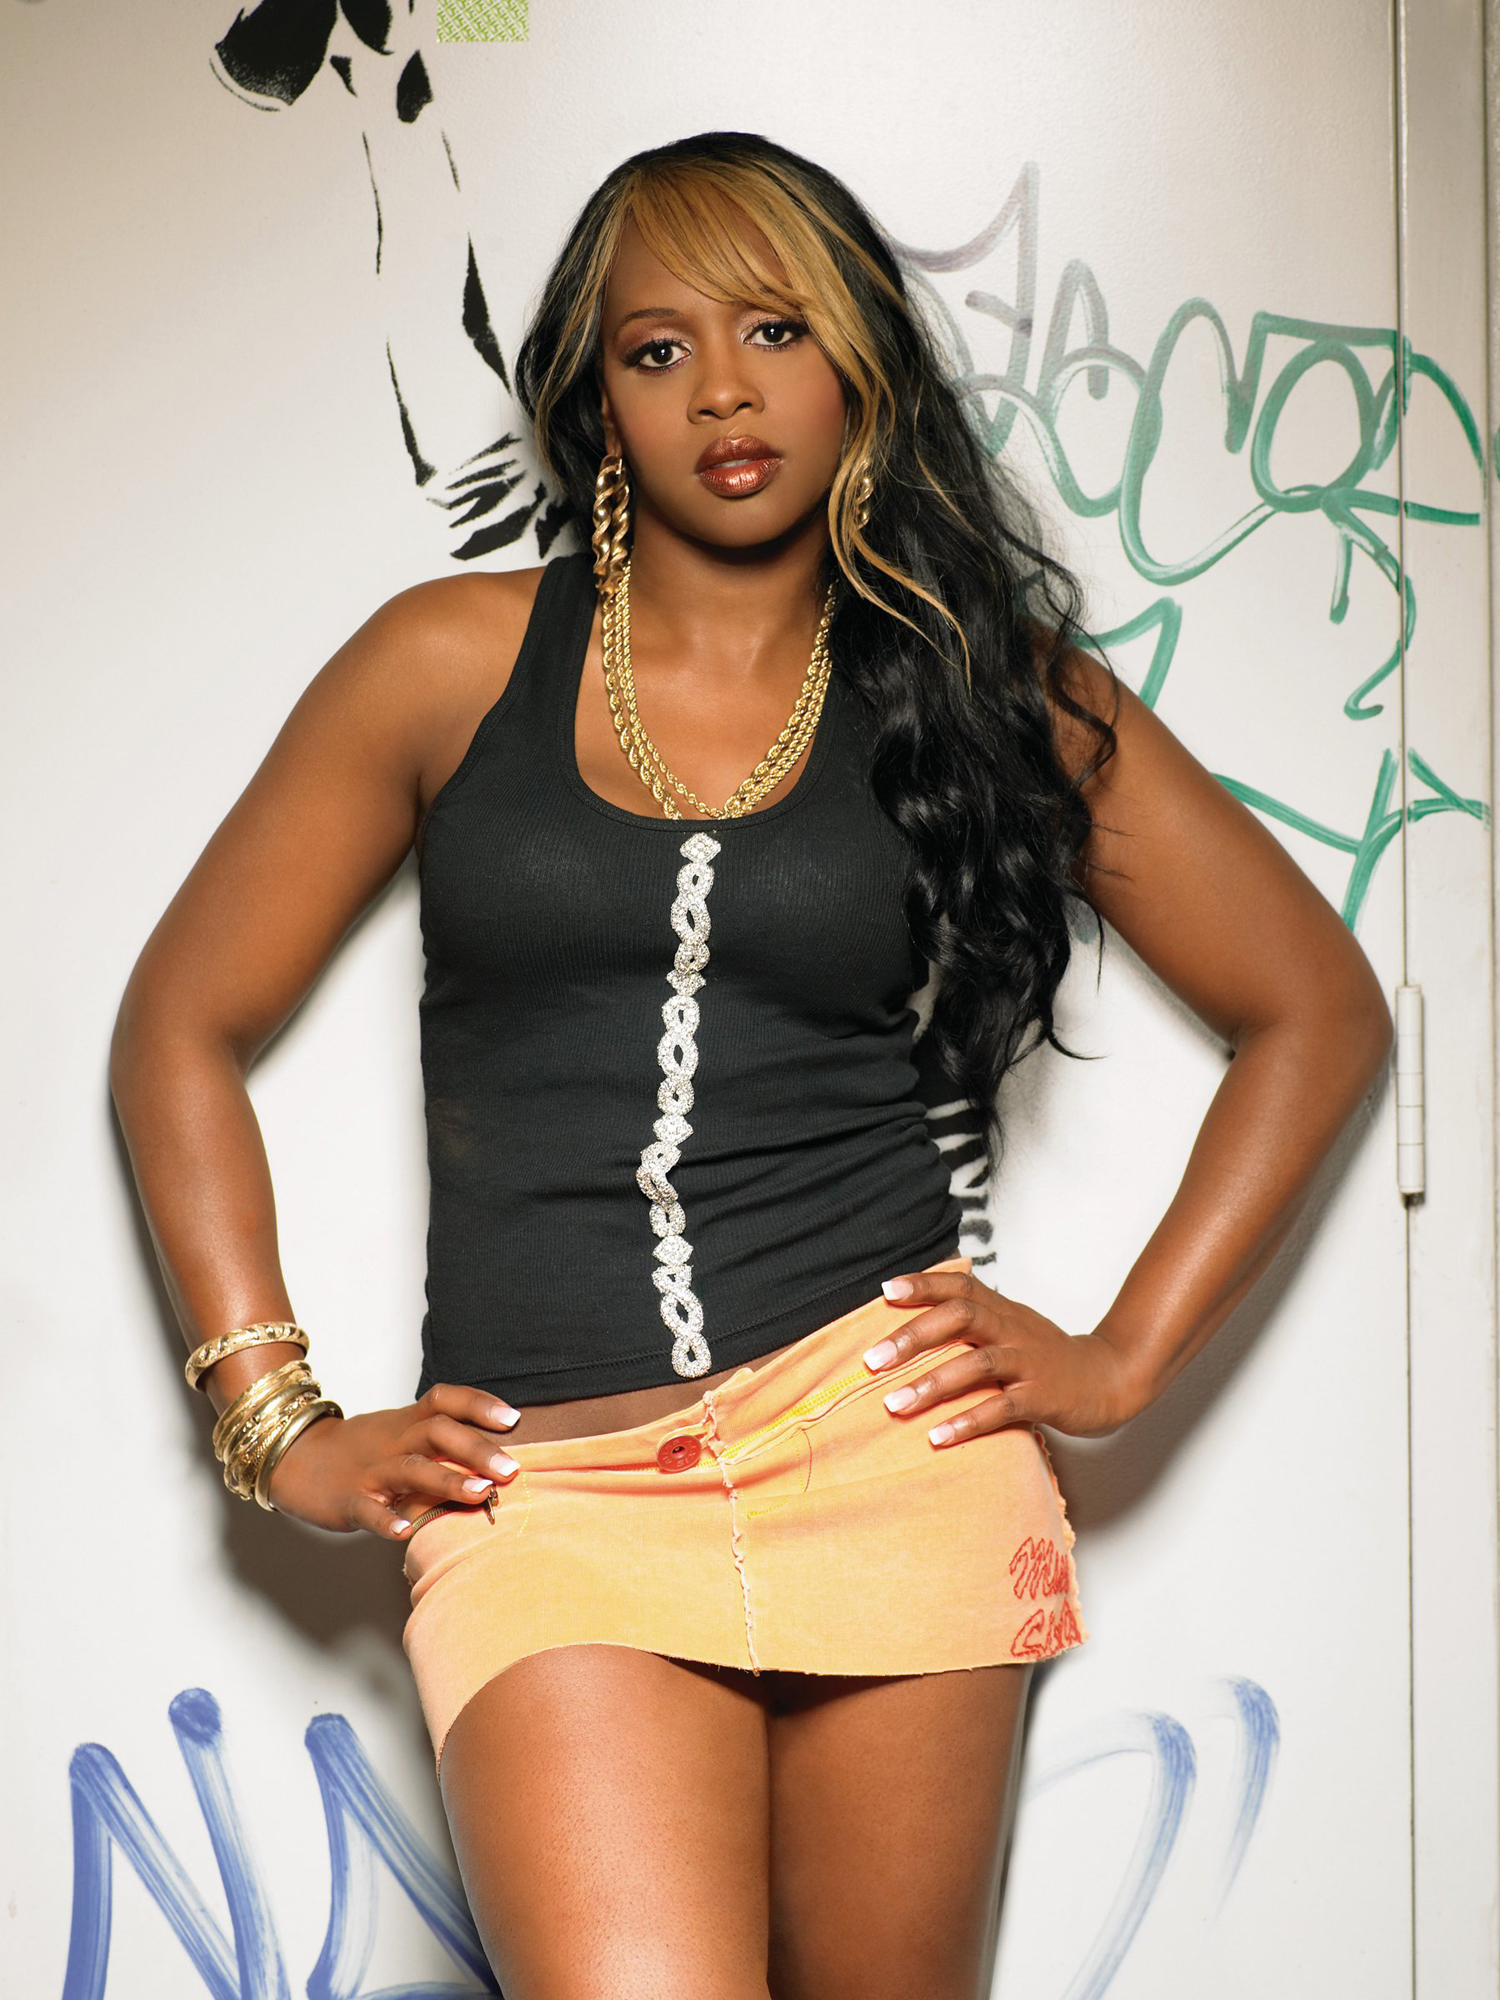 Remy Ma gets welcomed back by family and friends!